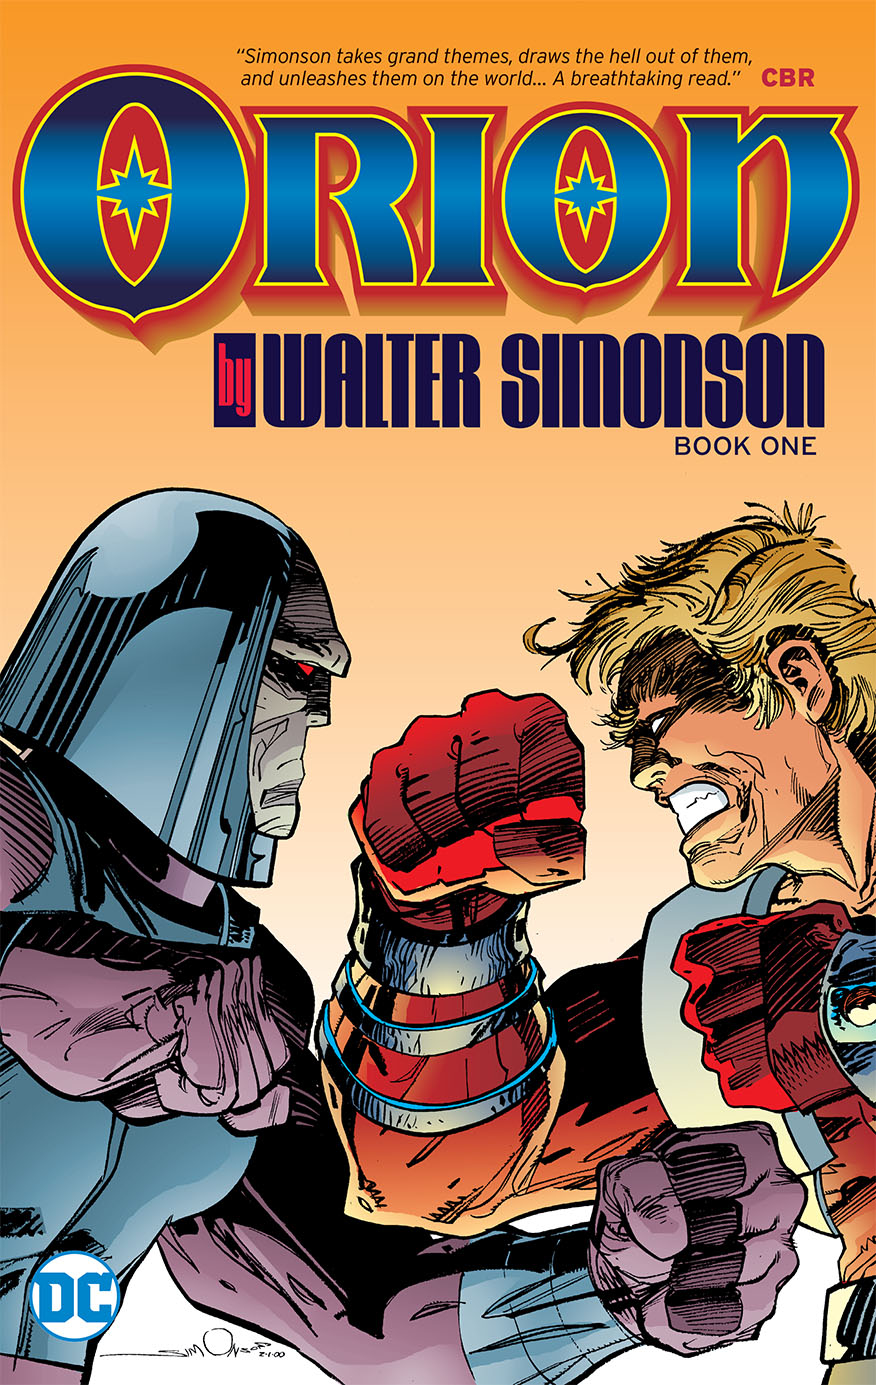 ORION BY WALTER SIMONSON TP BOOK 01 (APR180275)